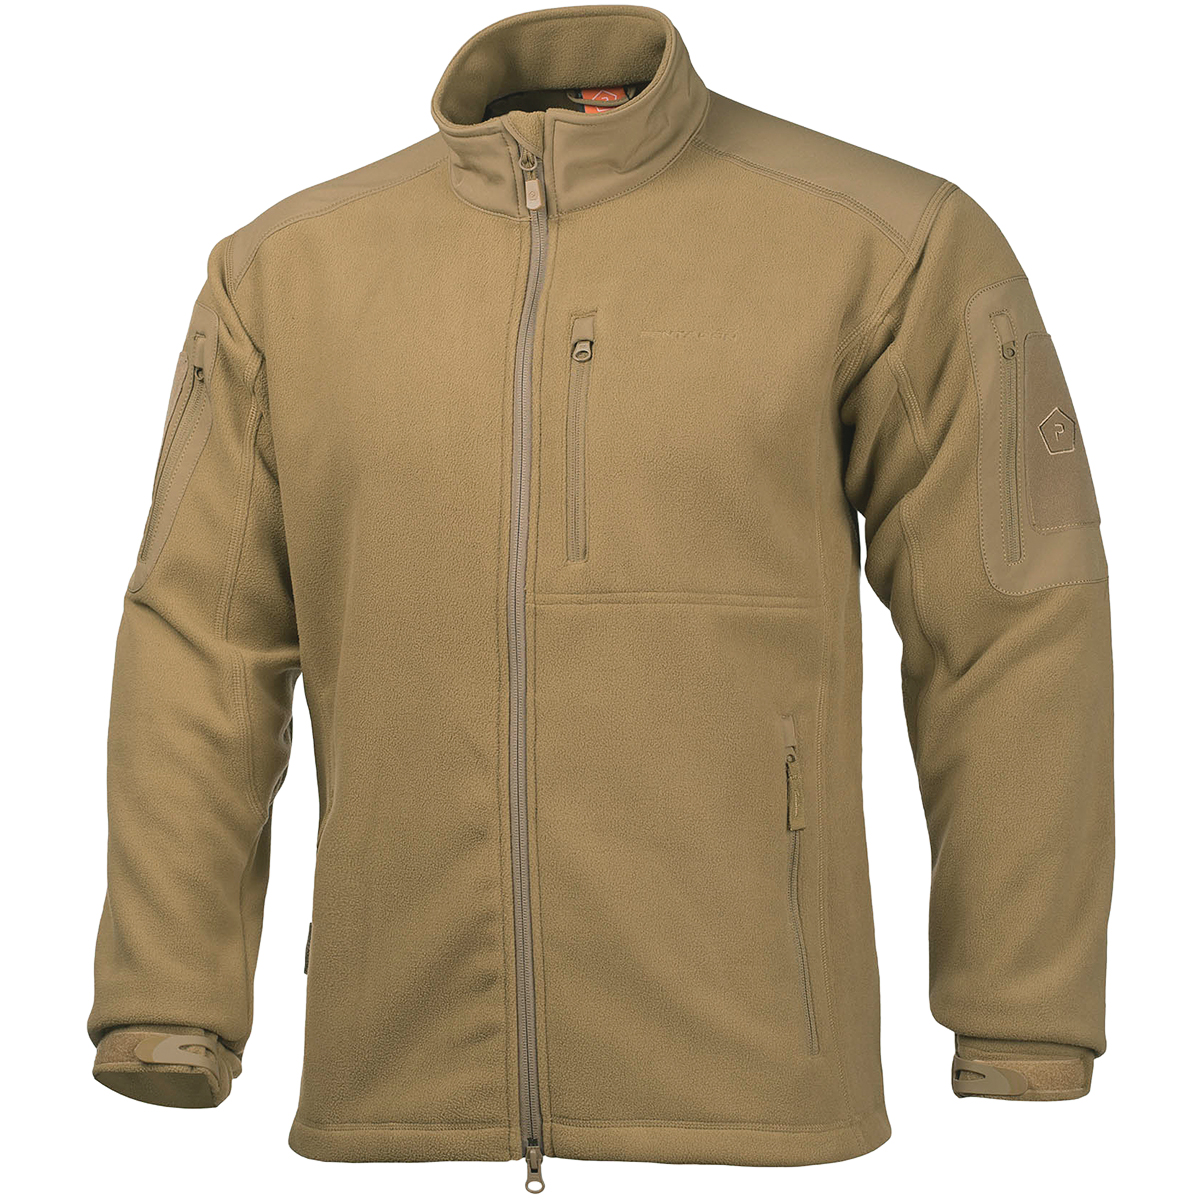 Pentagon Perseus Fleece Jacket 2.0 Warm Mens Military Patrol Duty